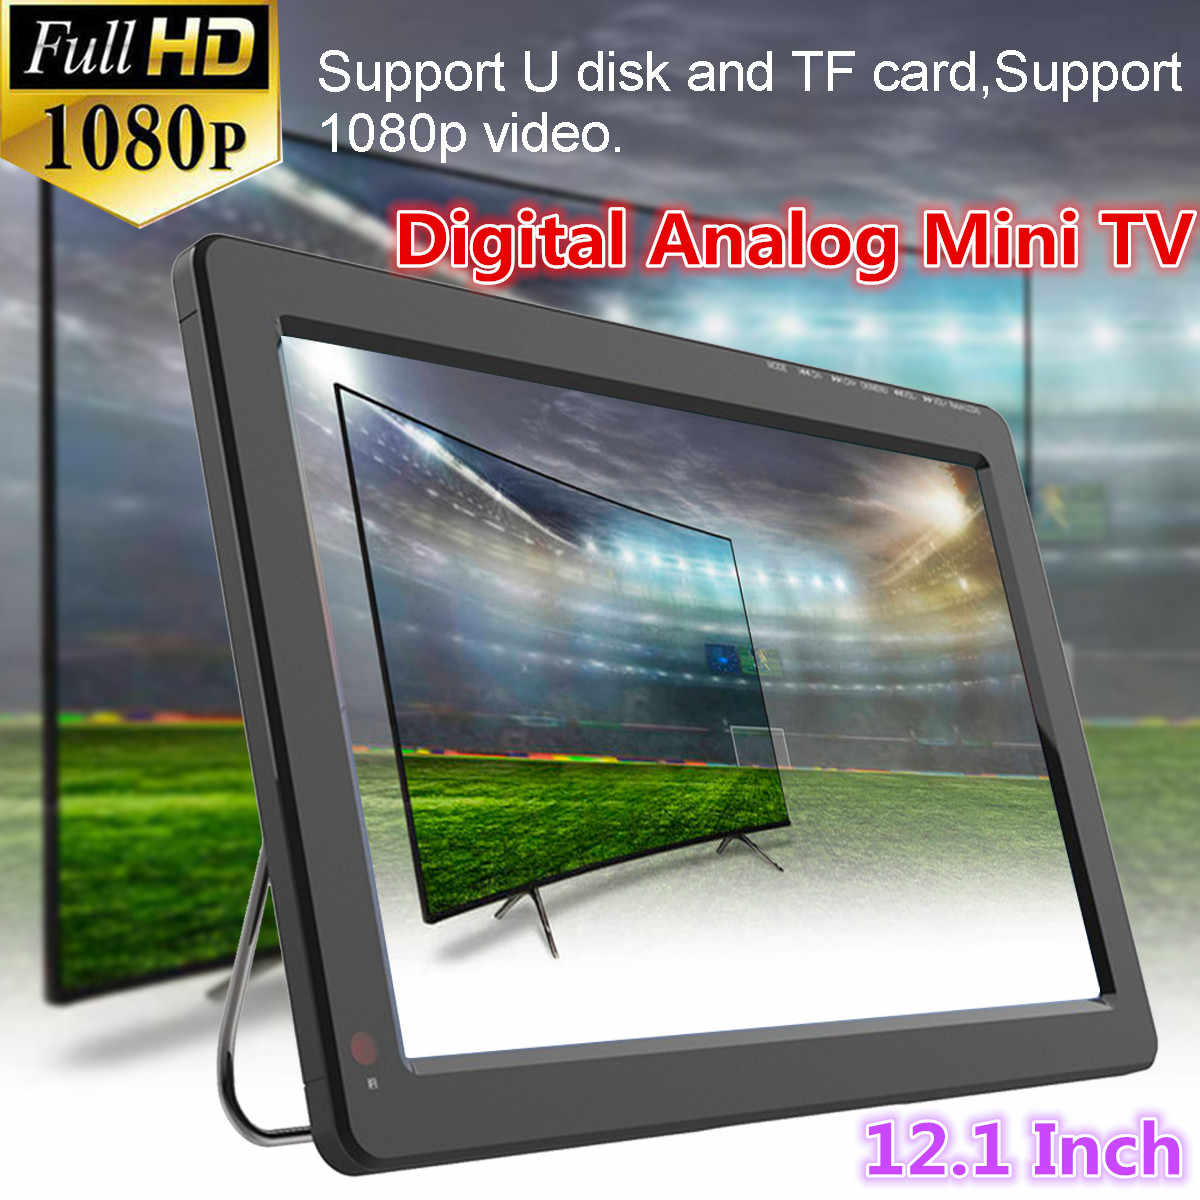 12V 18W 12.1 Inch Portable Analog Digital Mini TV Dvb-t/DVB-T2 TFT LED 1080P HD Mobil TV Mendukung TF Kartu USB Audio Uni Eropa Plug